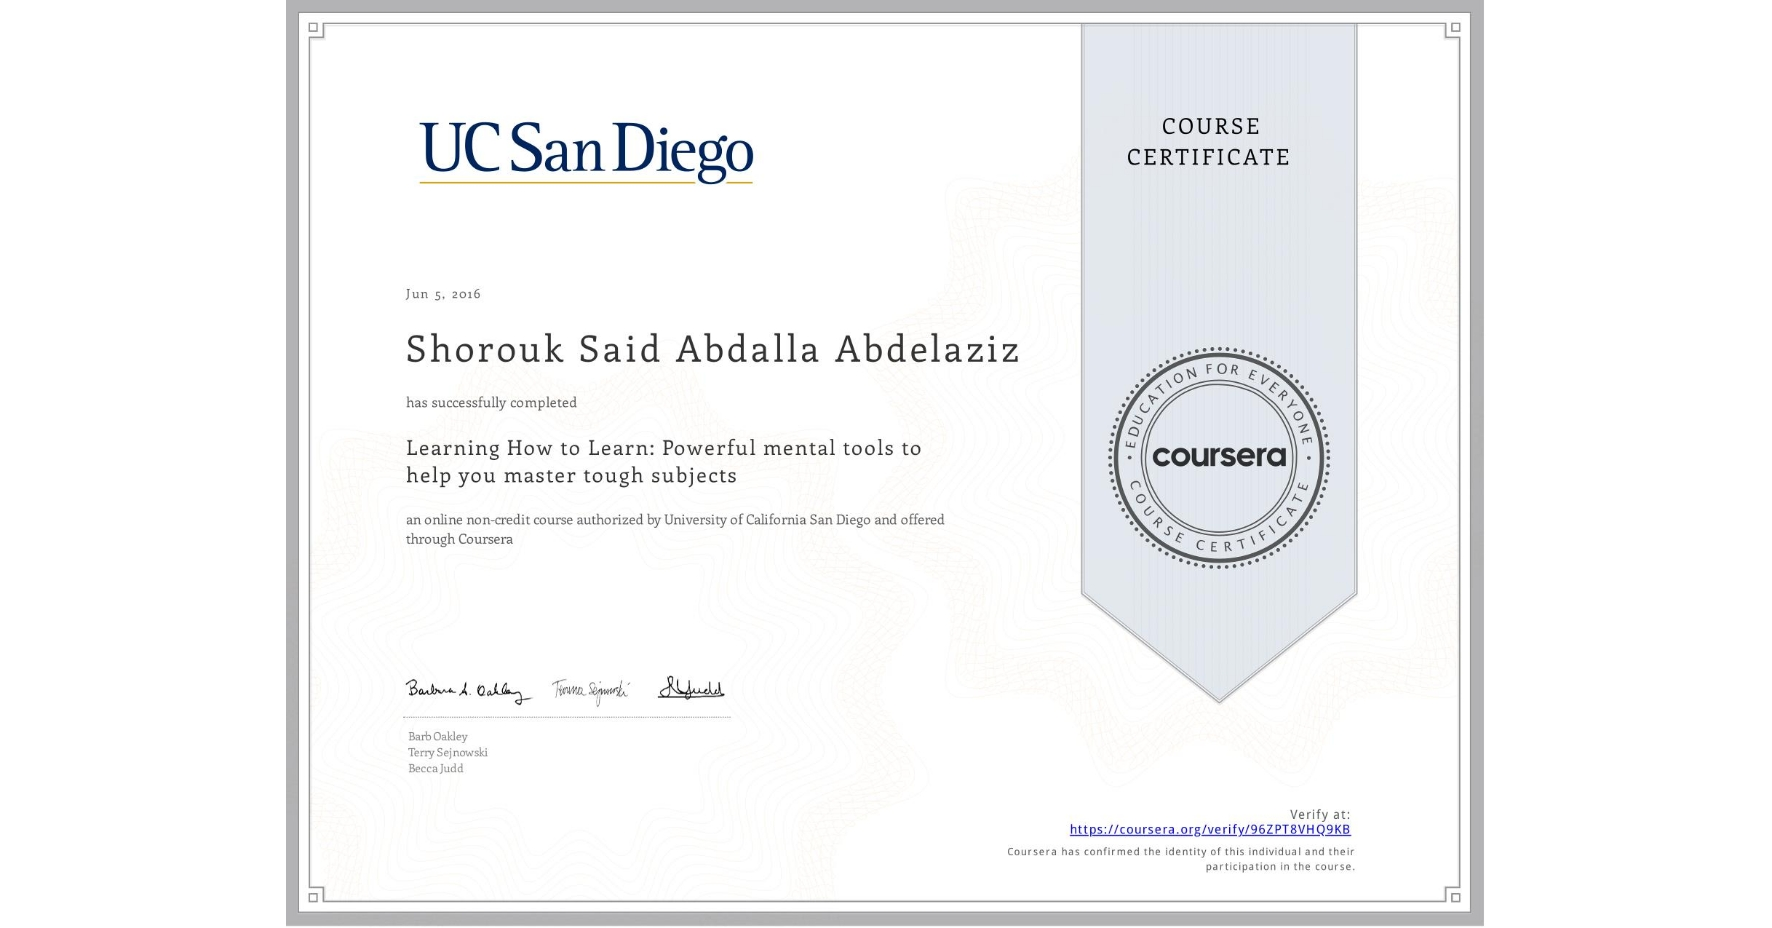 View certificate for Shorouk Said Abdalla Abdelaziz, Learning How to Learn: Powerful mental tools to help you master tough subjects, an online non-credit course authorized by McMaster University & University of California San Diego and offered through Coursera